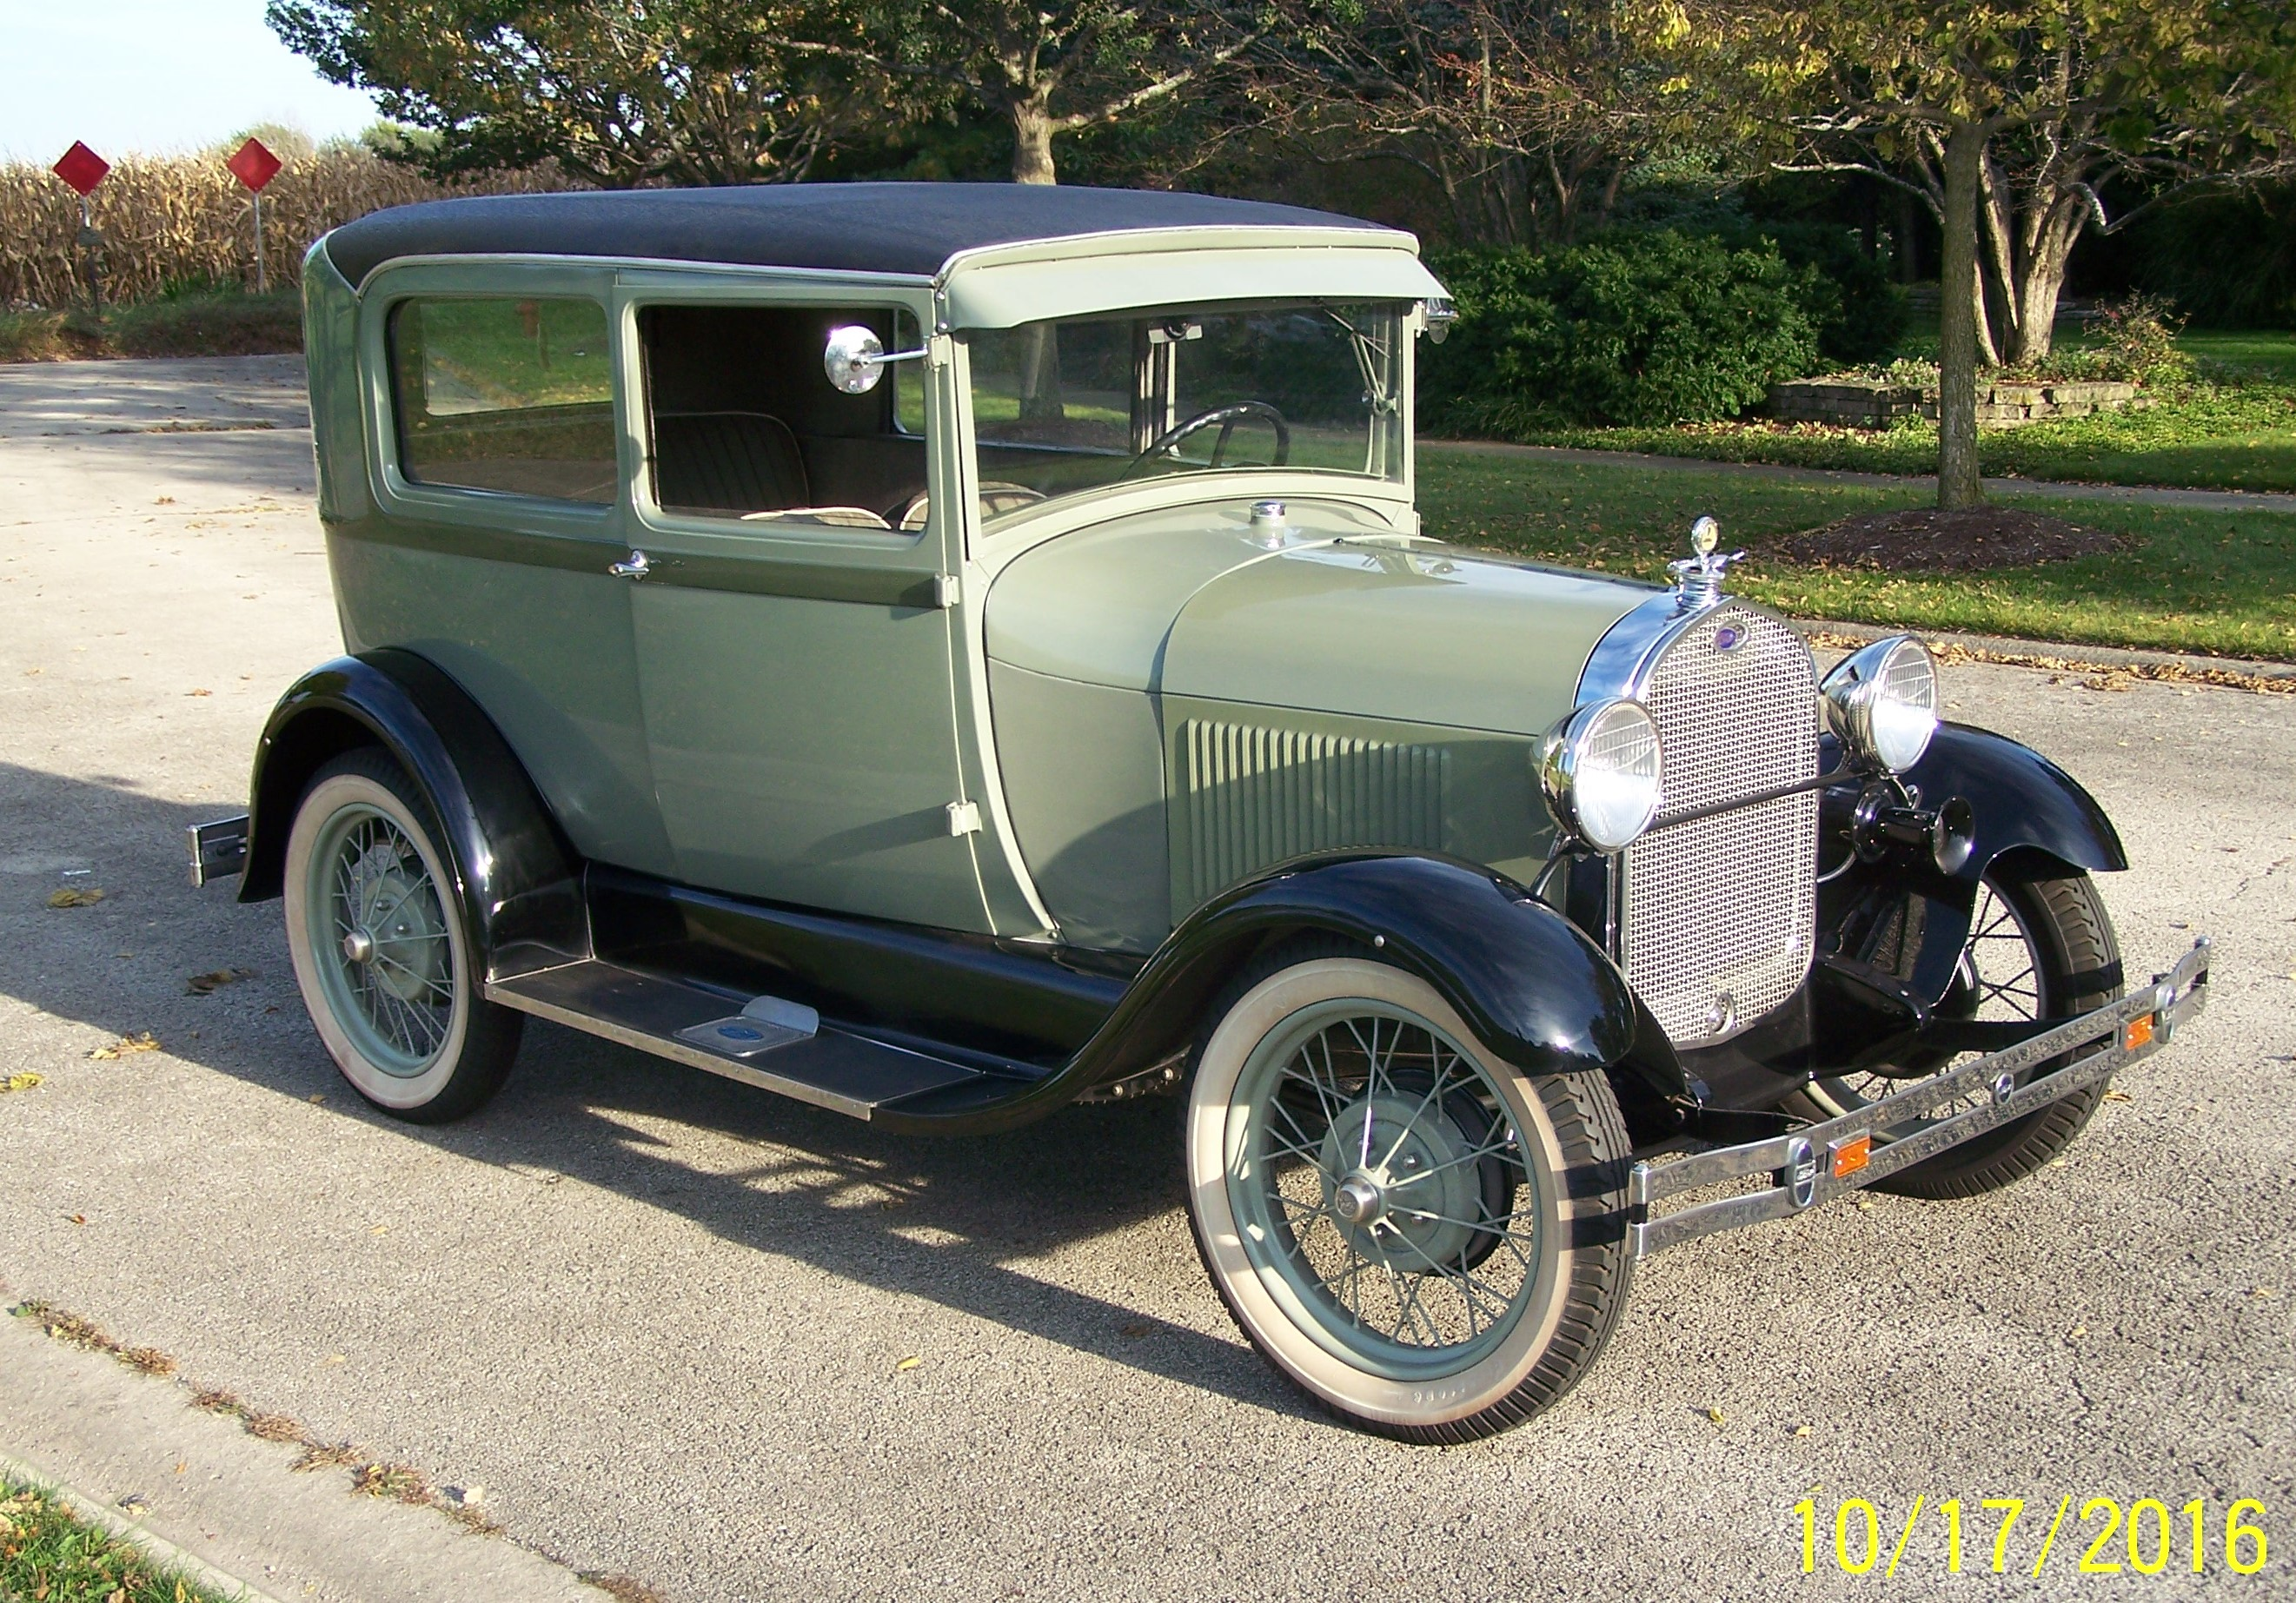 1928 Ford Model A - Cars For Sale - Antique Automobile Club of ...